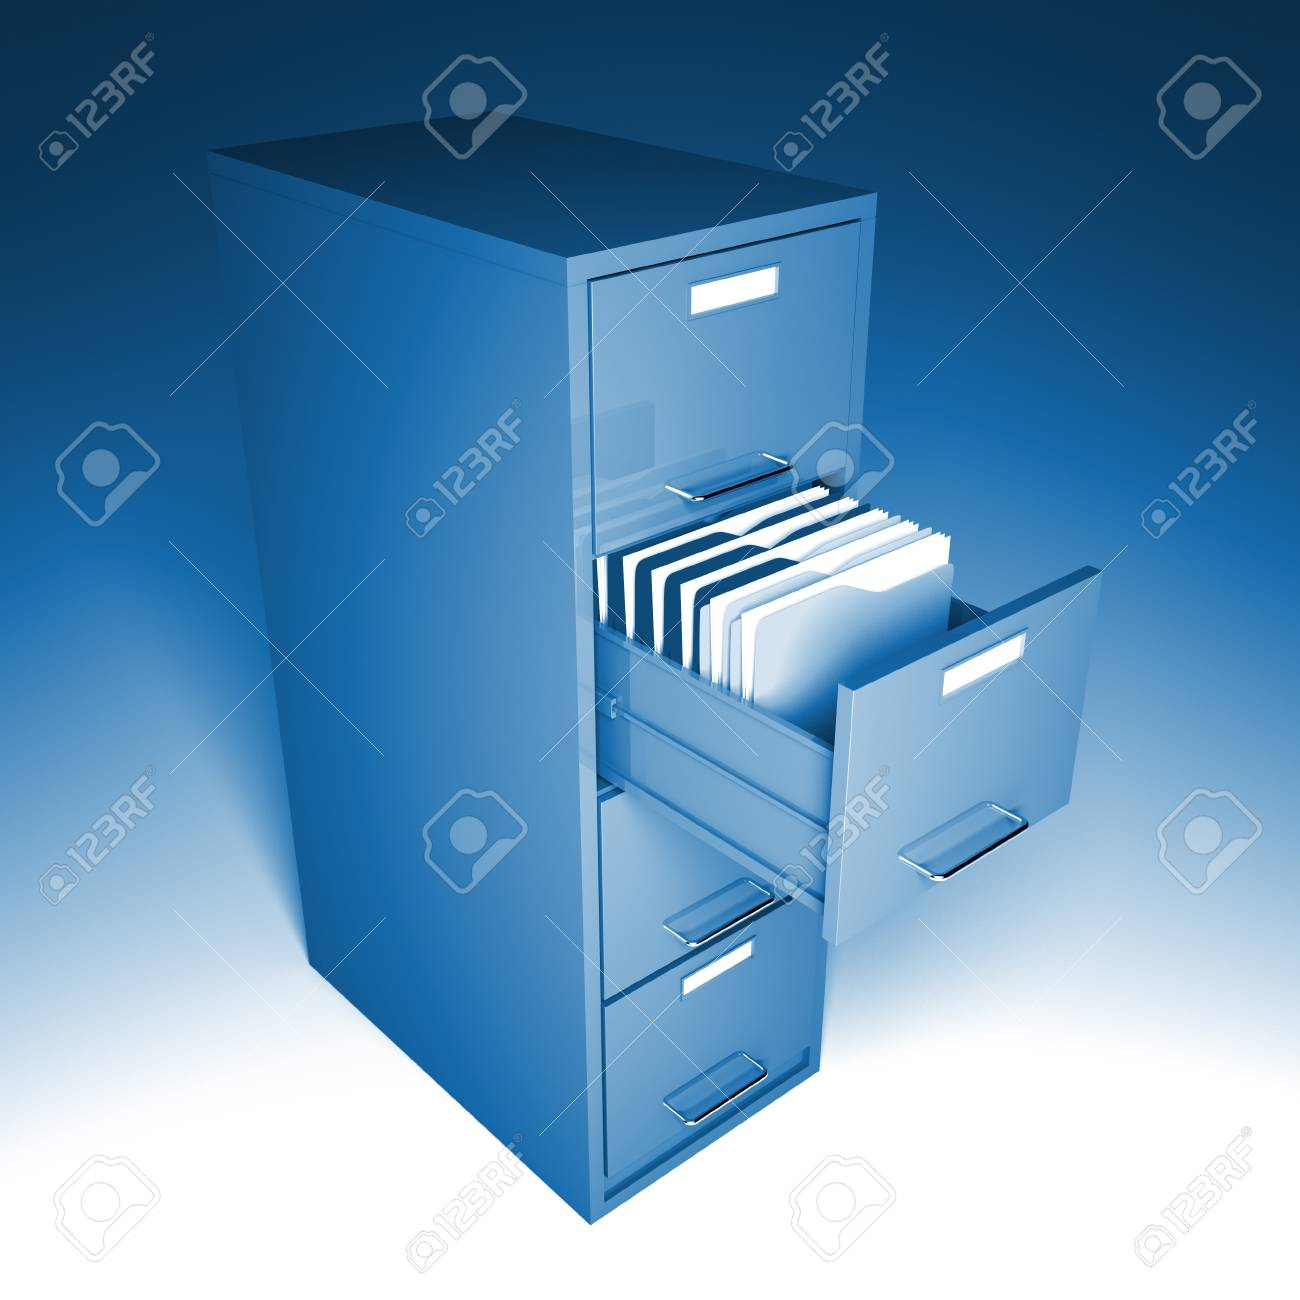 classic file cabinet 3d blue tone office image Stock Photo - 7168331